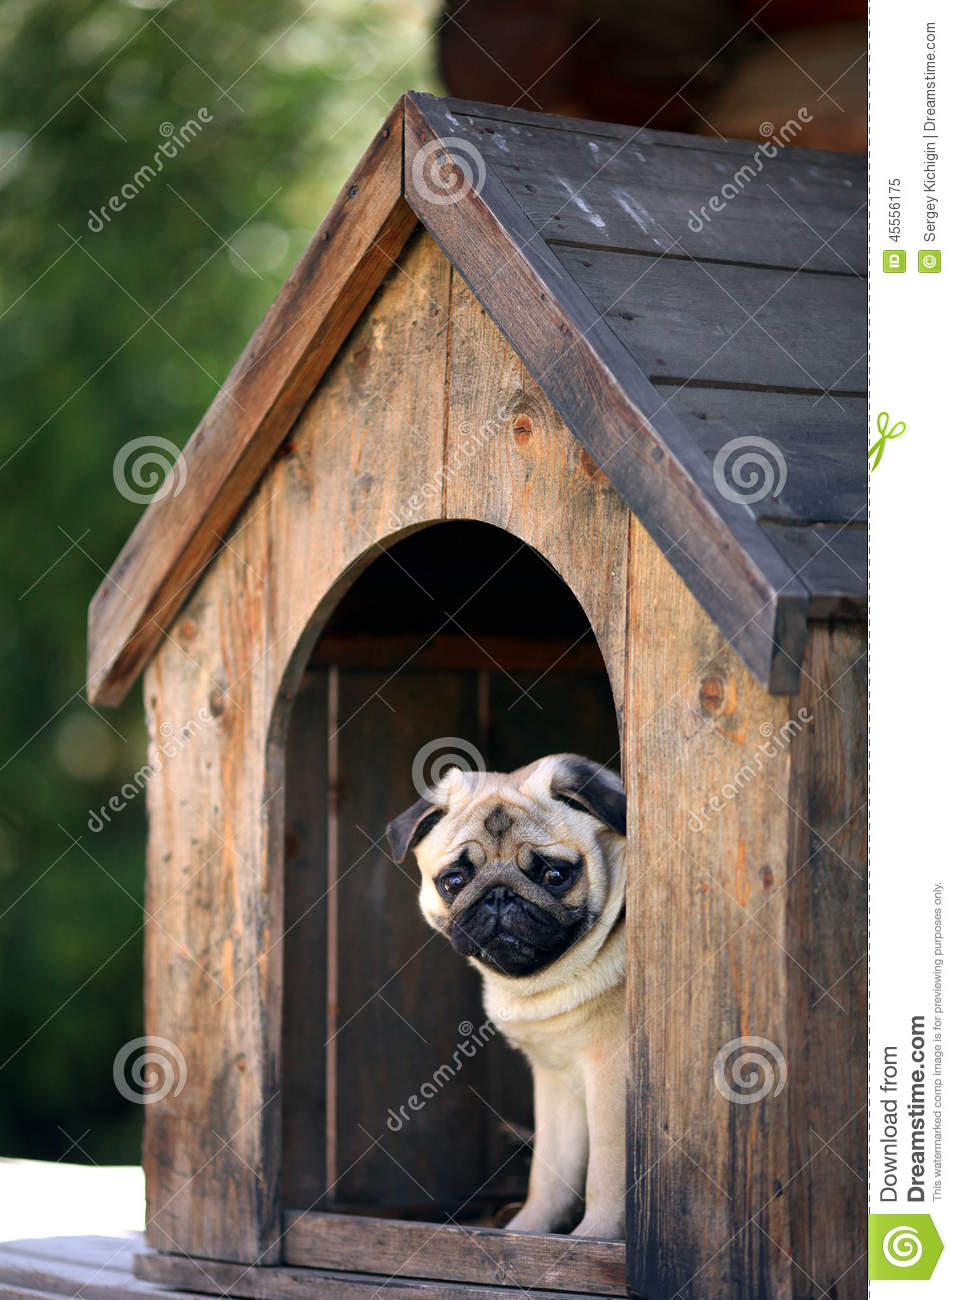 Funny Pug Dog In The Dog House Stock Photo Image 45556175